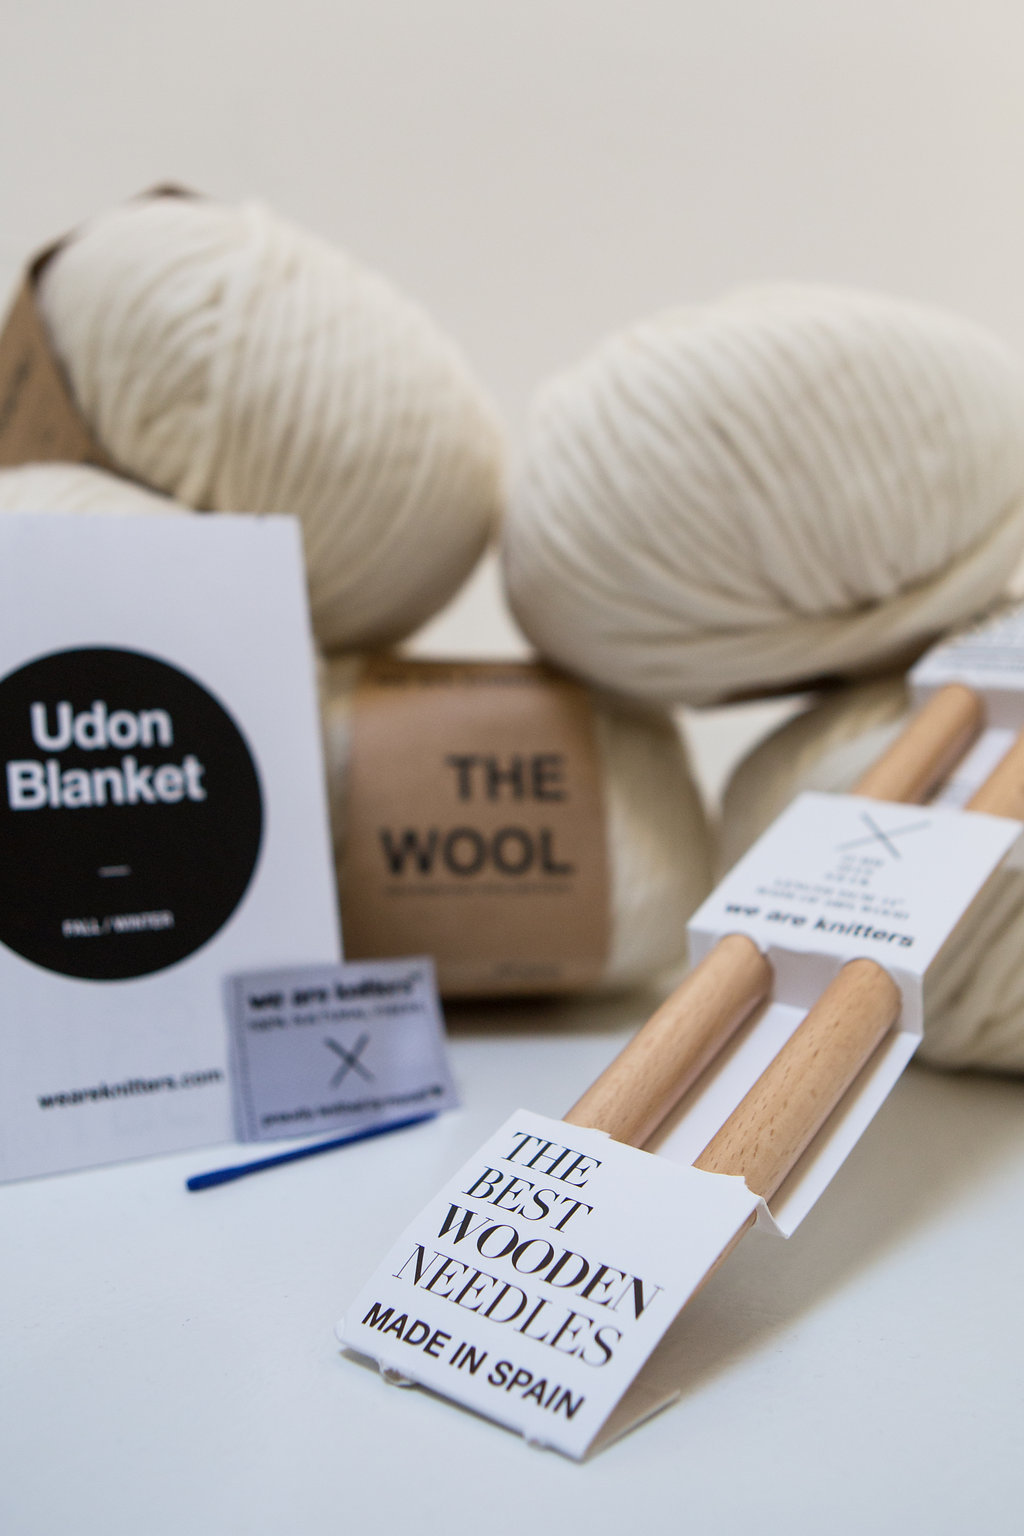 We Are Knitters We Are Knitters Giveaway Win A Knitting Kit To Create A Blanket